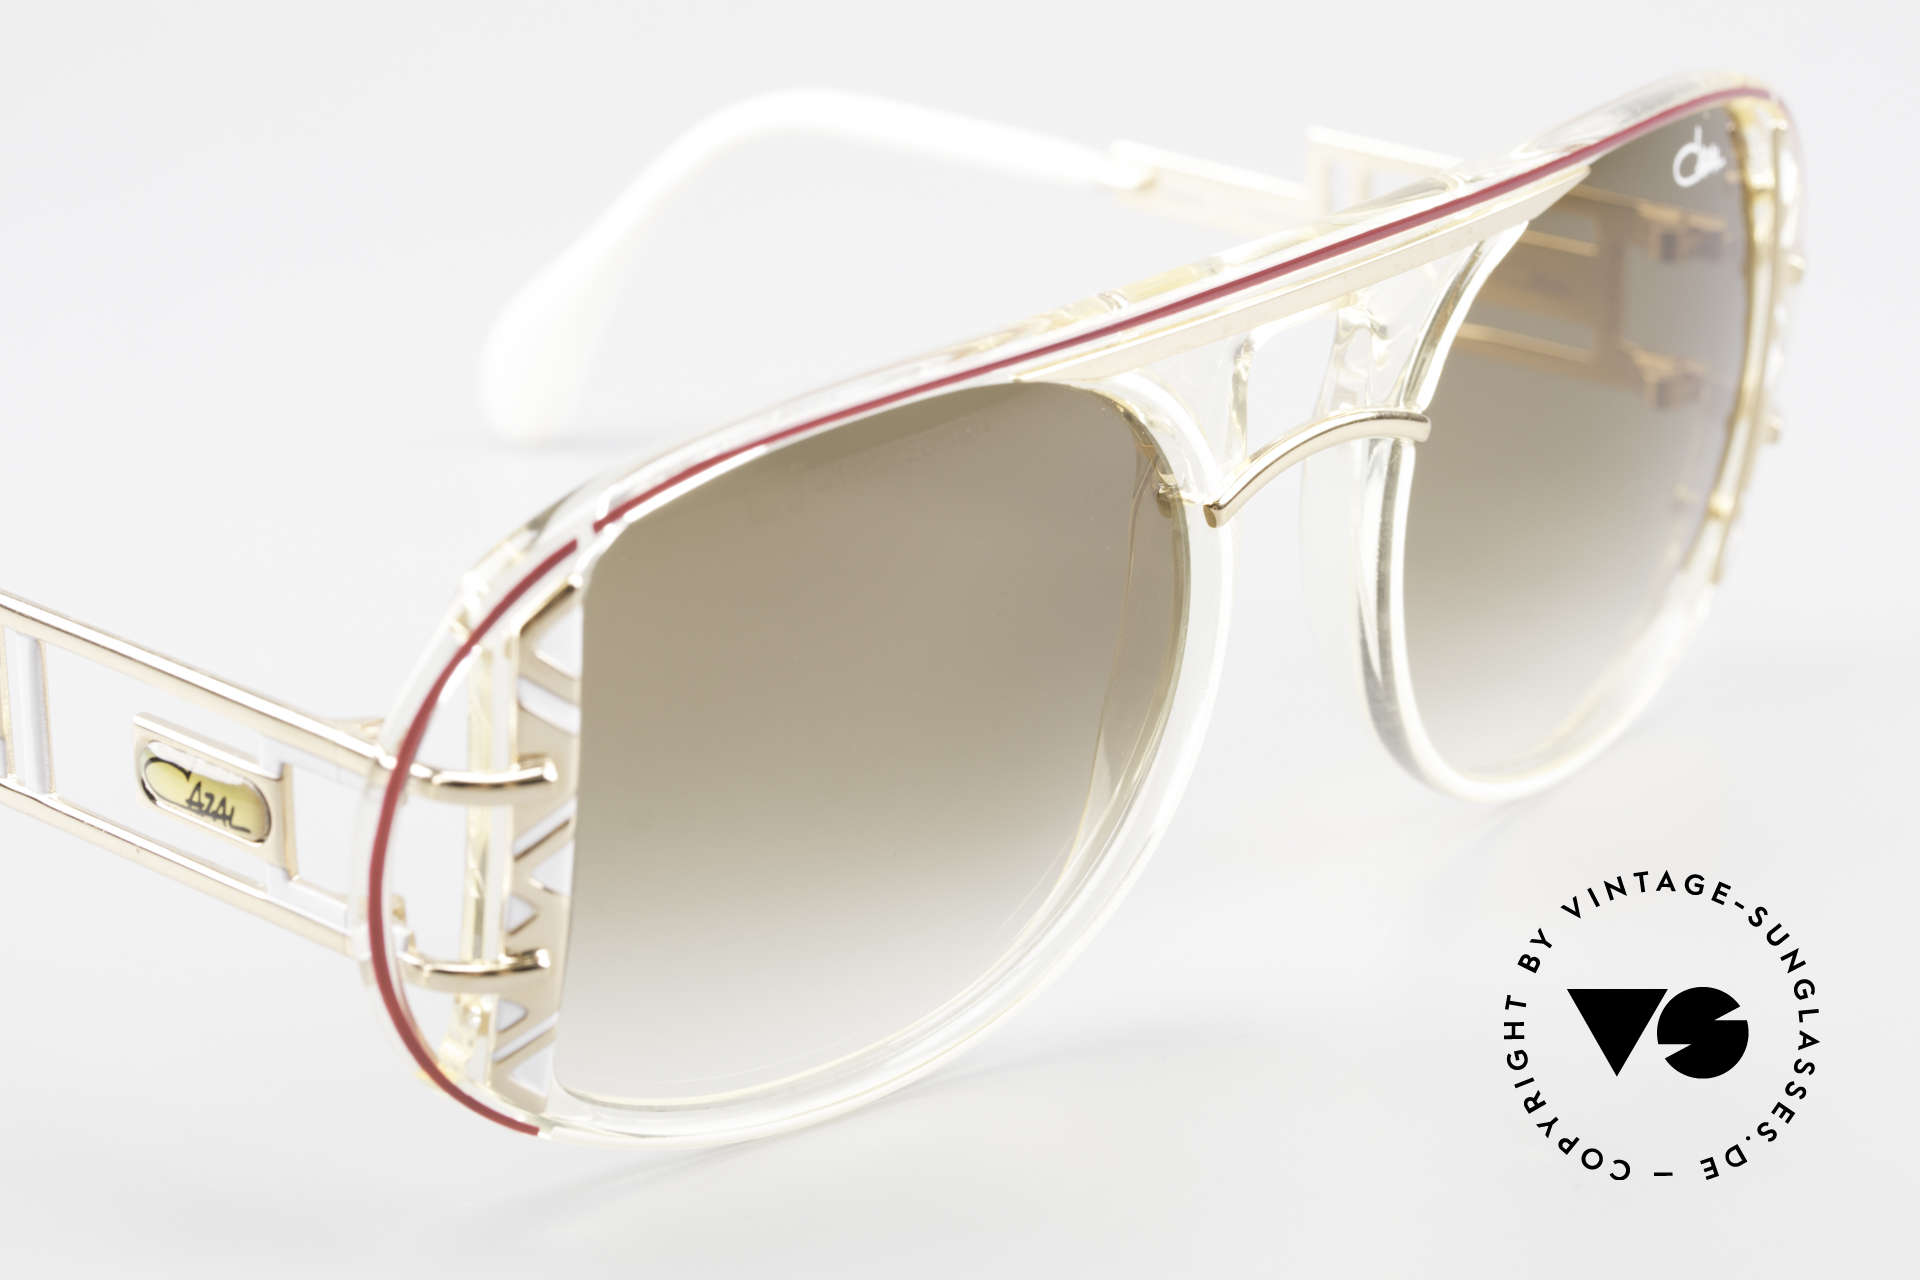 Cazal 875 Extraordinary 90's Sunglasses, unworn (like all our vintage designer sunglasses), Made for Men and Women